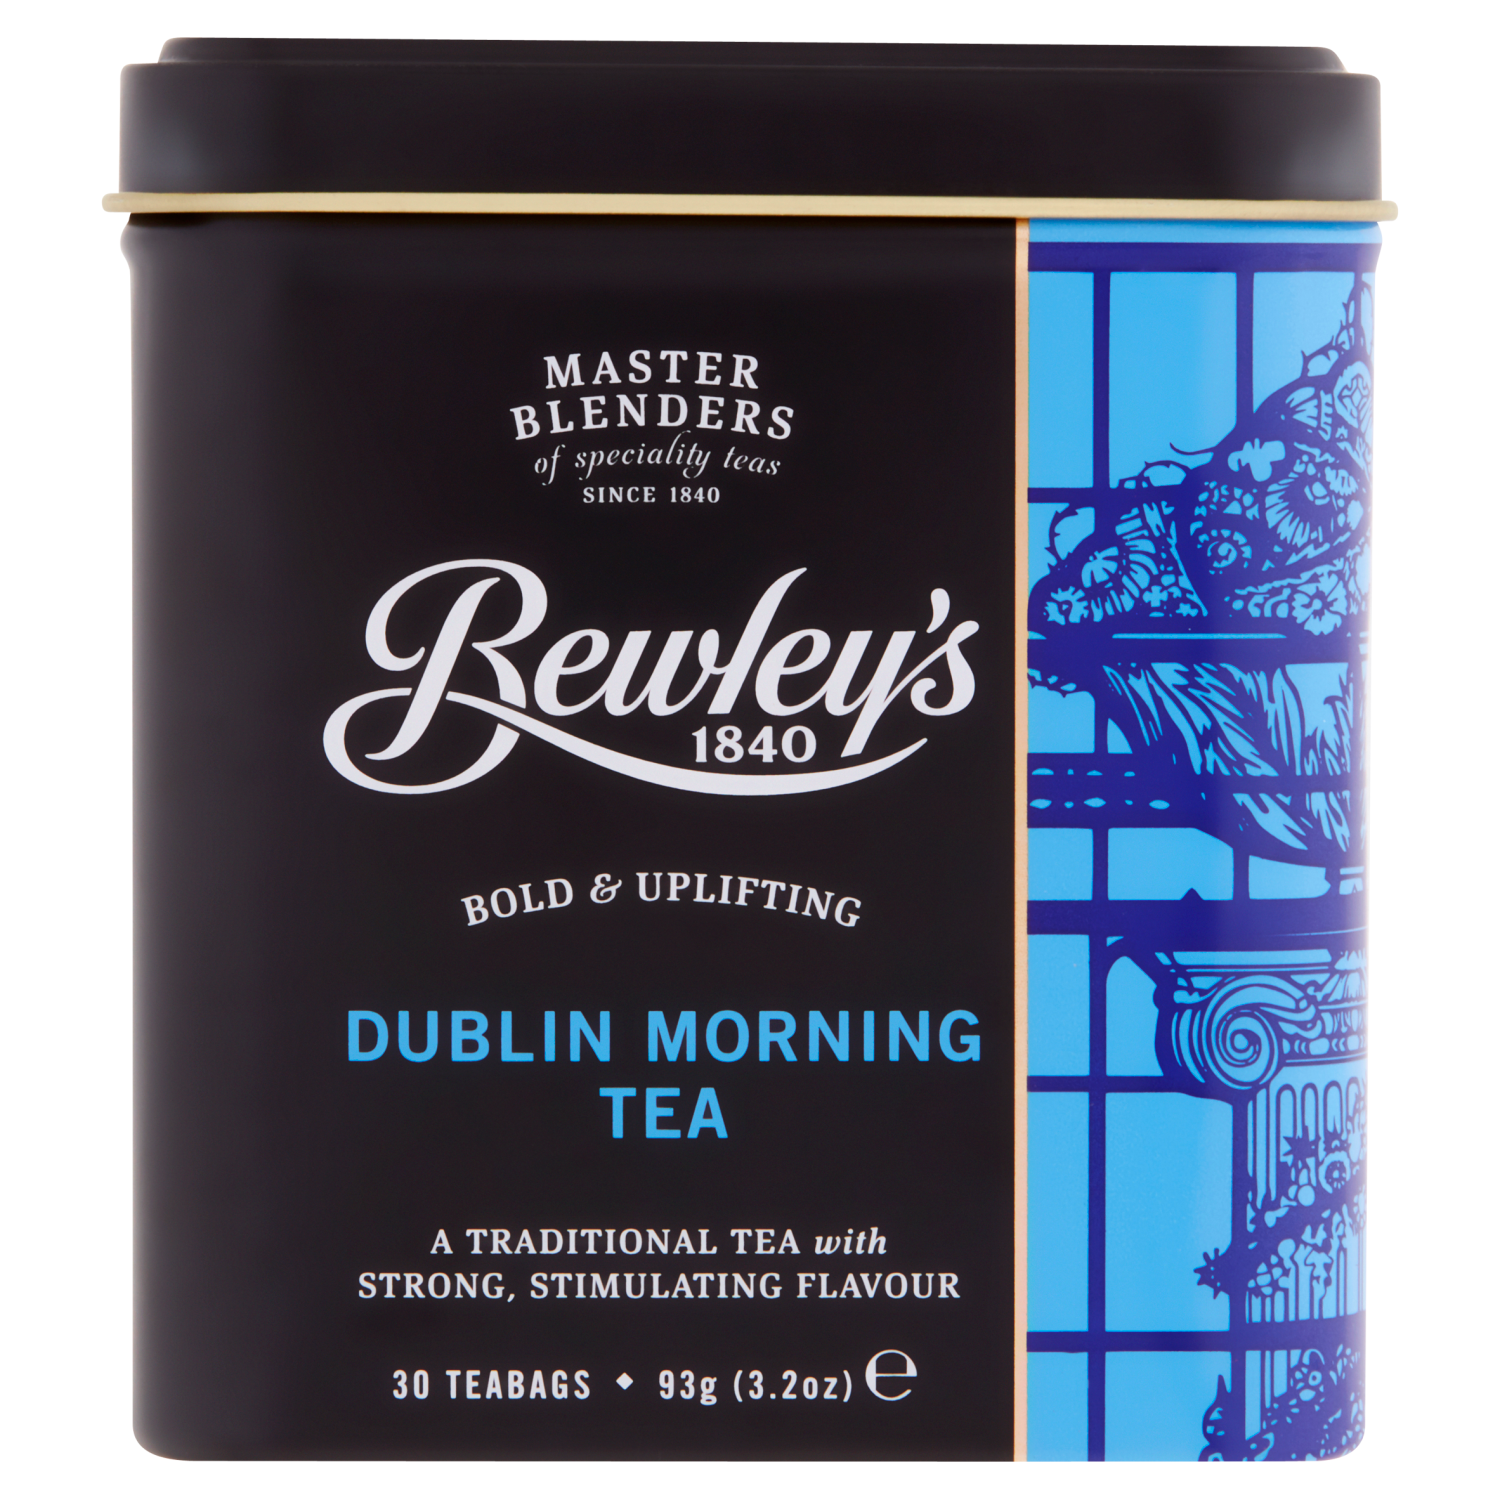 Bewley's Dublin Morning Teabags 30s In Tin